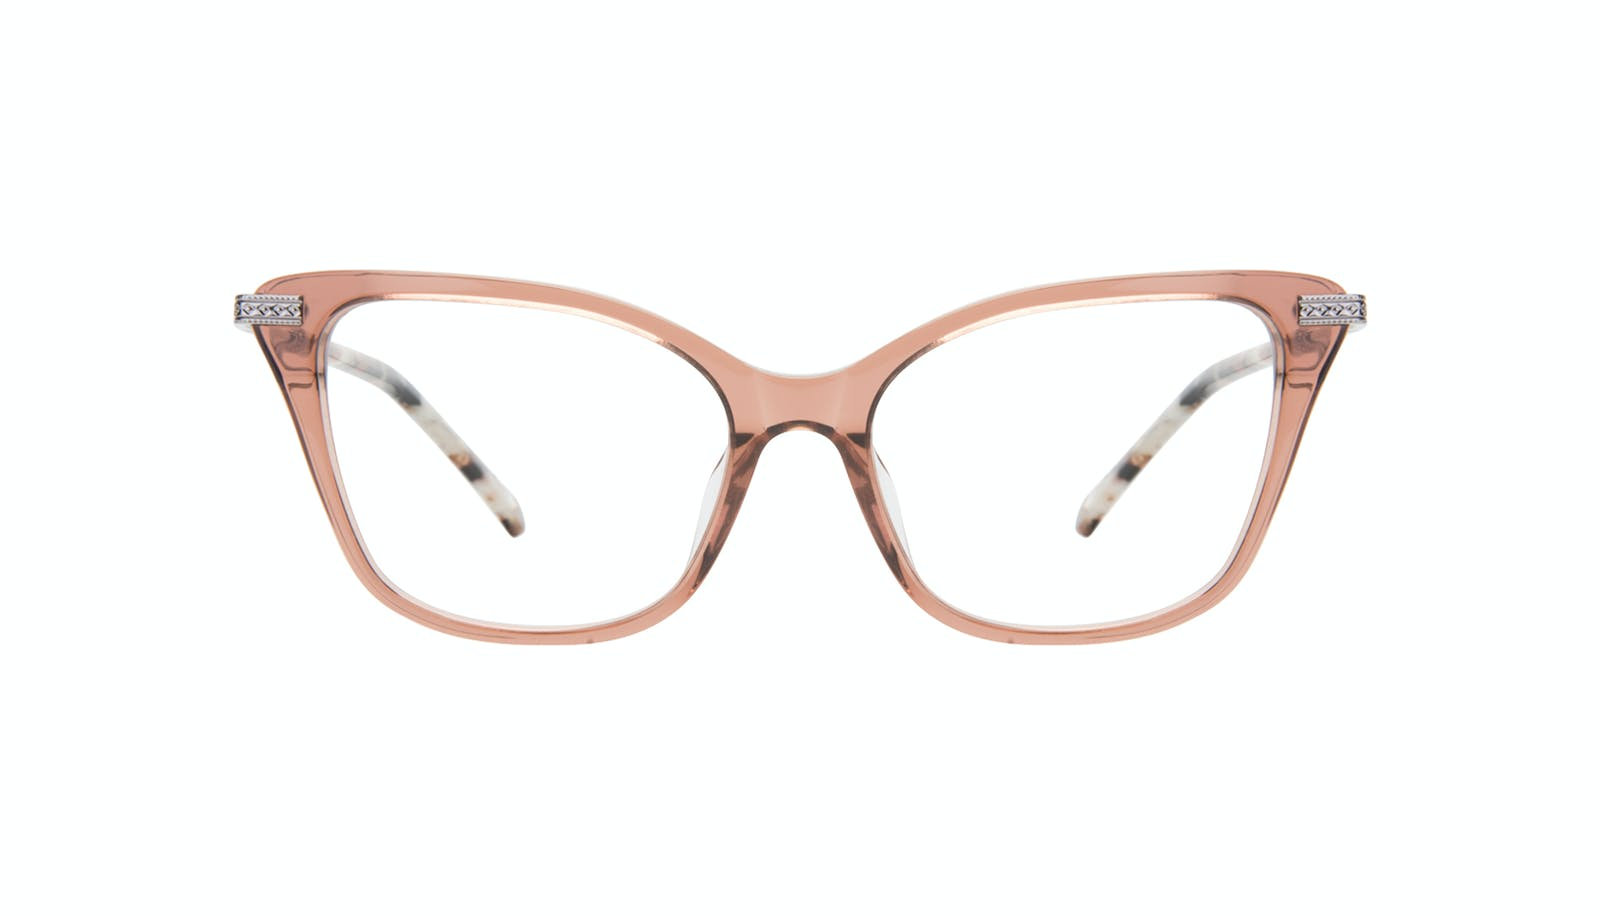 6cbde79f7d Affordable Fashion Glasses Cat Eye Eyeglasses Women Stargaze Truffle Rose